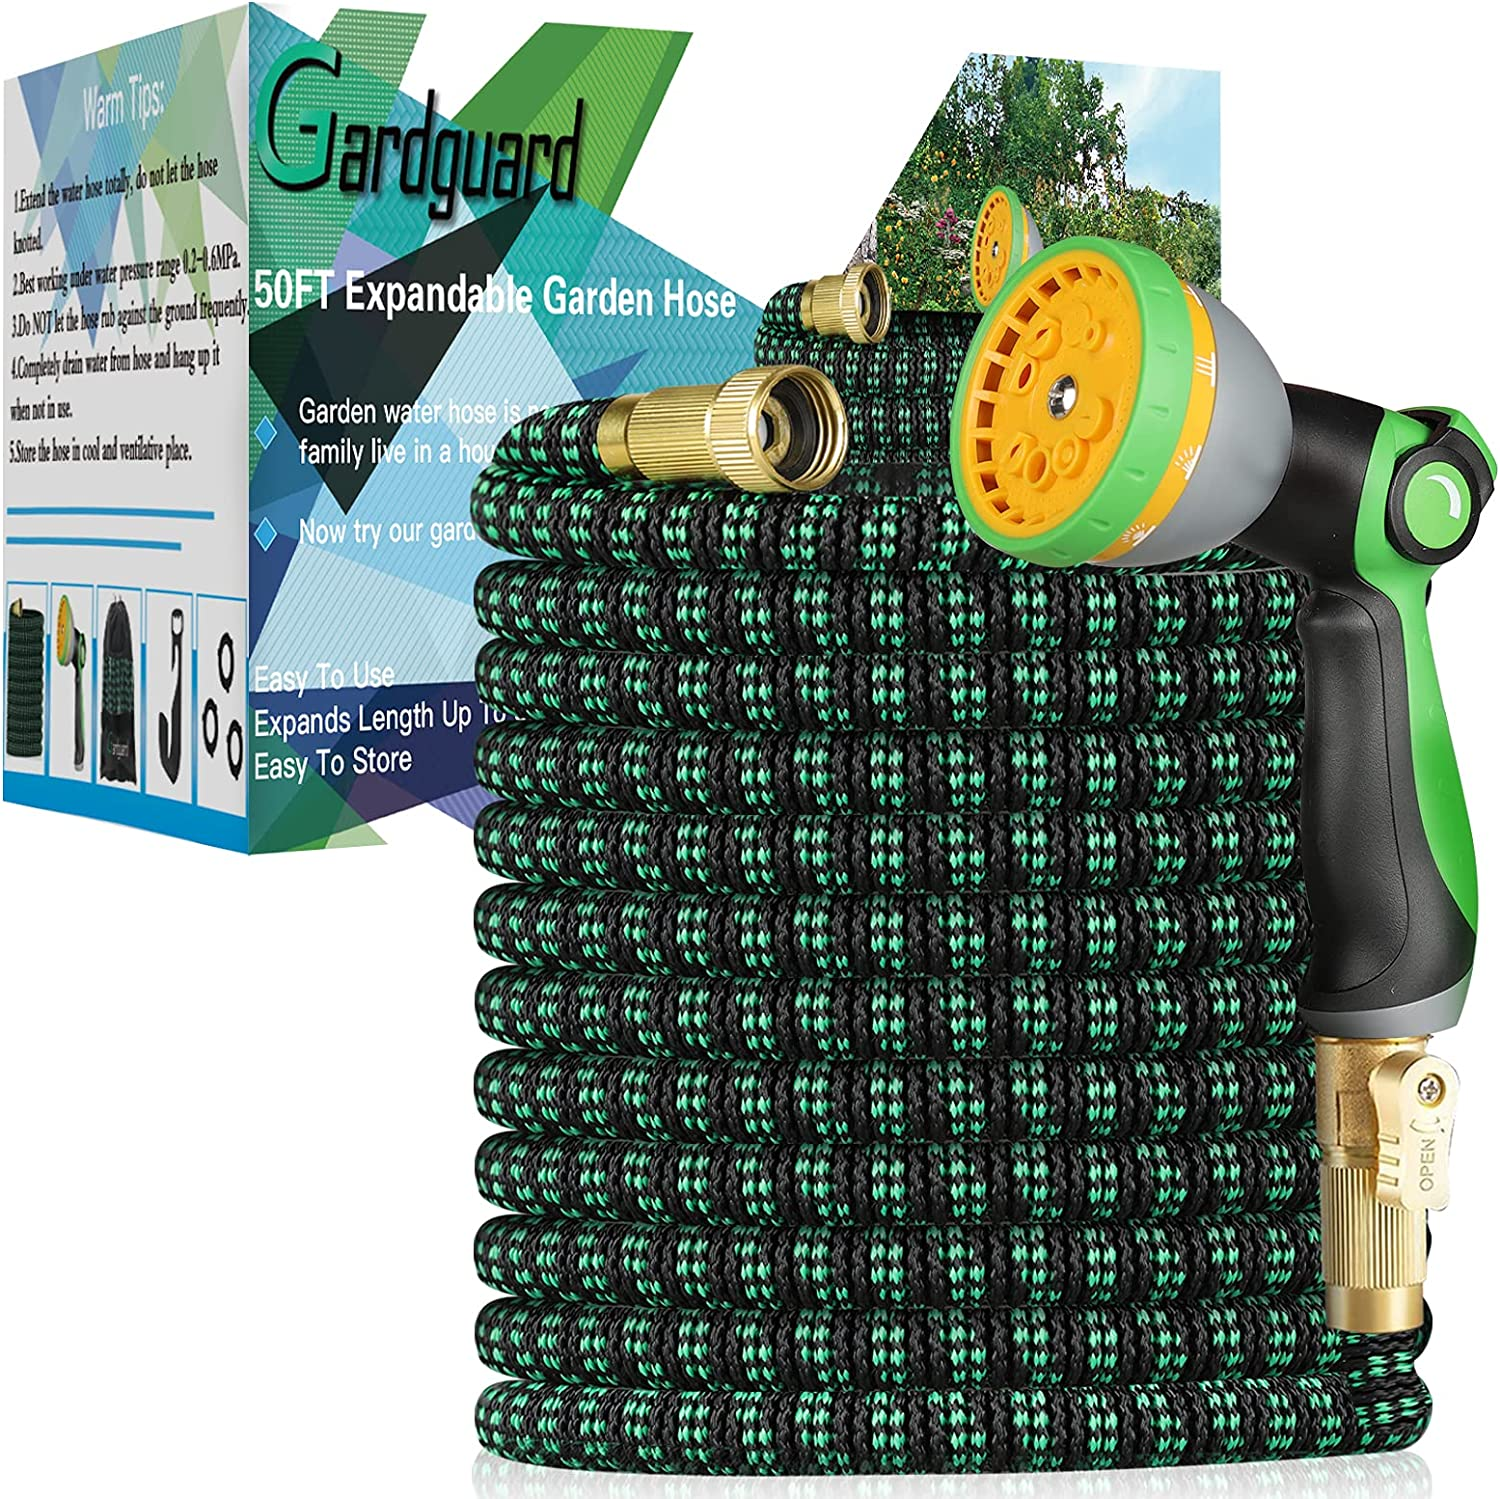 Gardguard Expandable Garden Hose 50FT Expanding Water Hose with 10 Function High Pressure Nozzle, Lightweight Water Garden Hoses 3-Layers Latex, Leakproof for Outdoor Watering and Washing and Cleaning